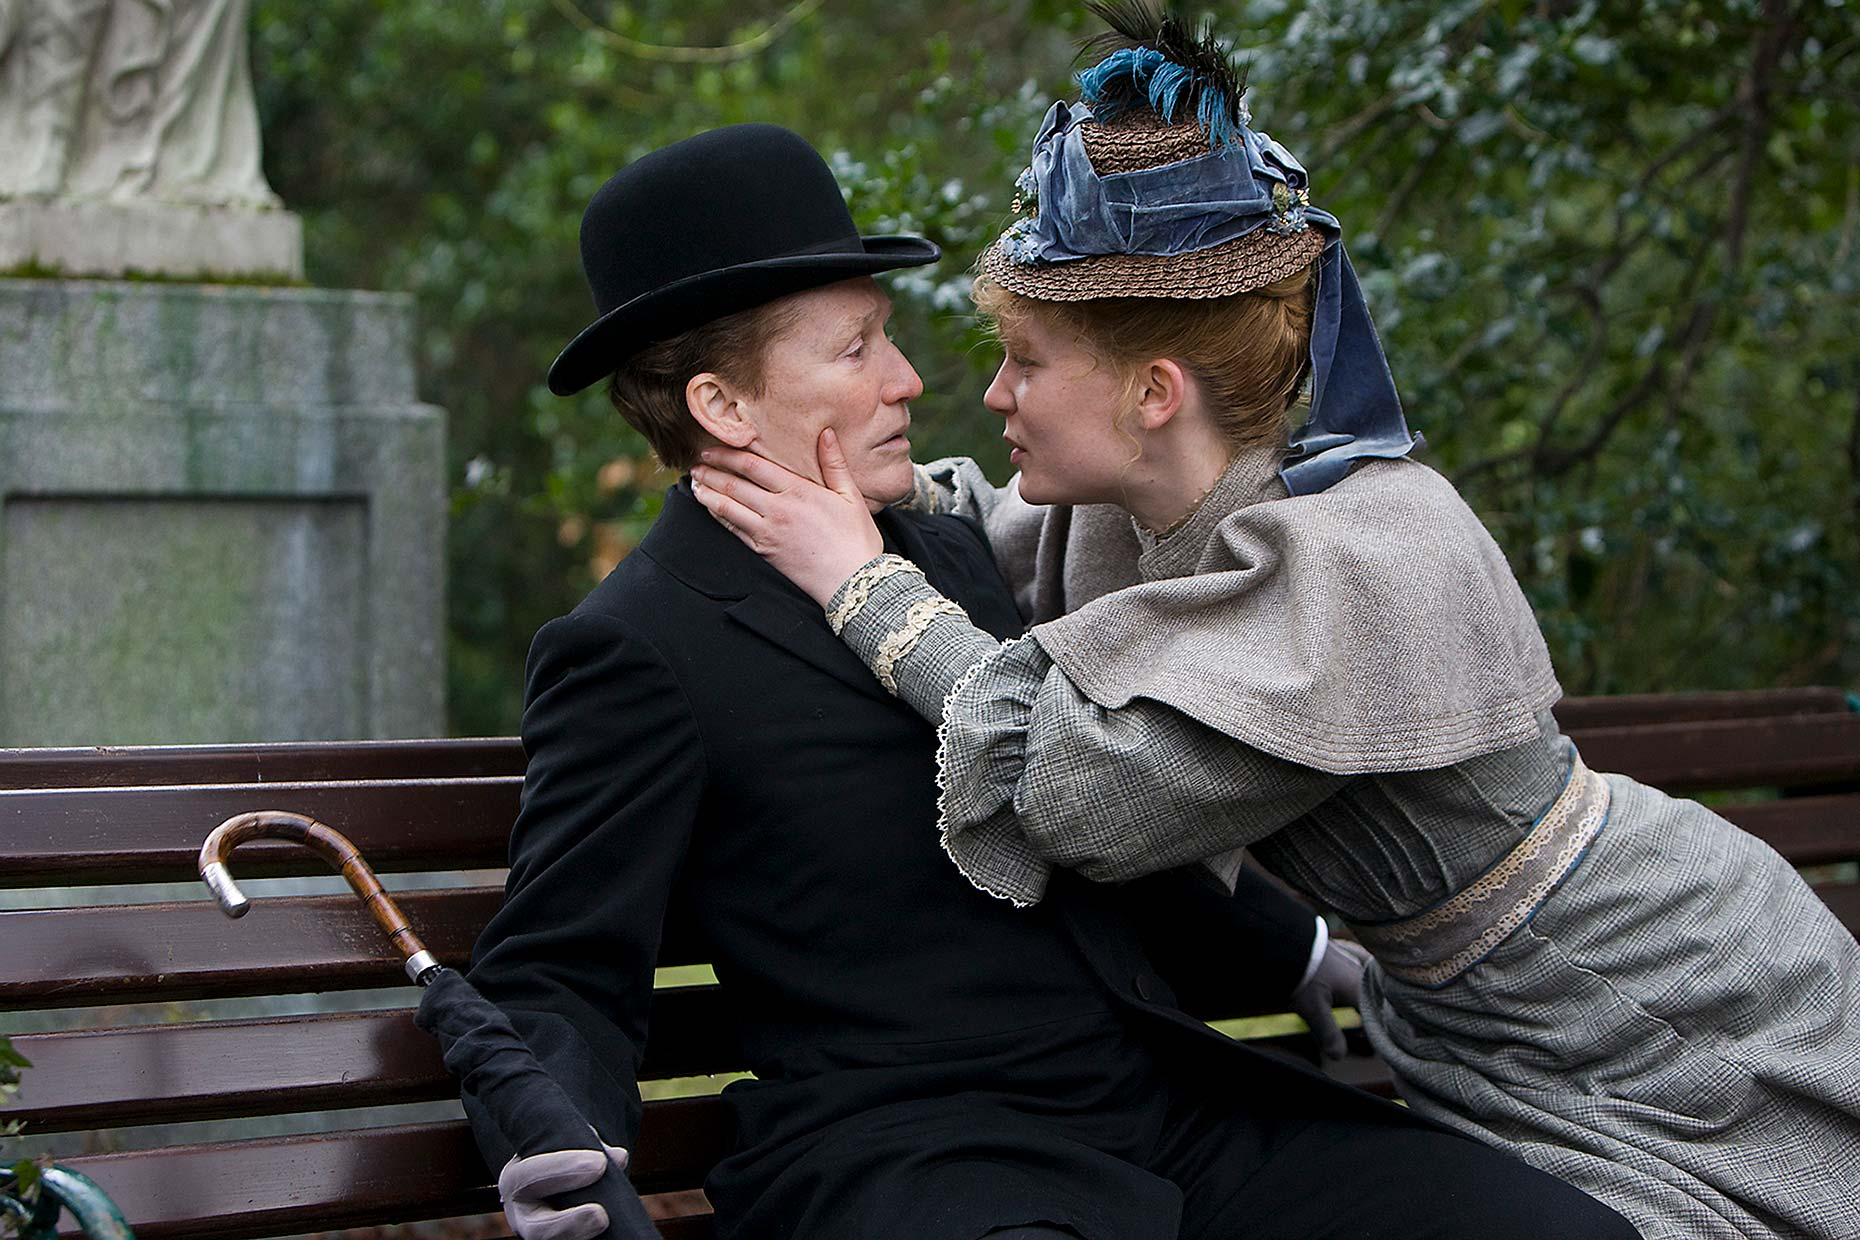 ALBERT NOBBS Glenn Close and Mia Wasikowska (2)